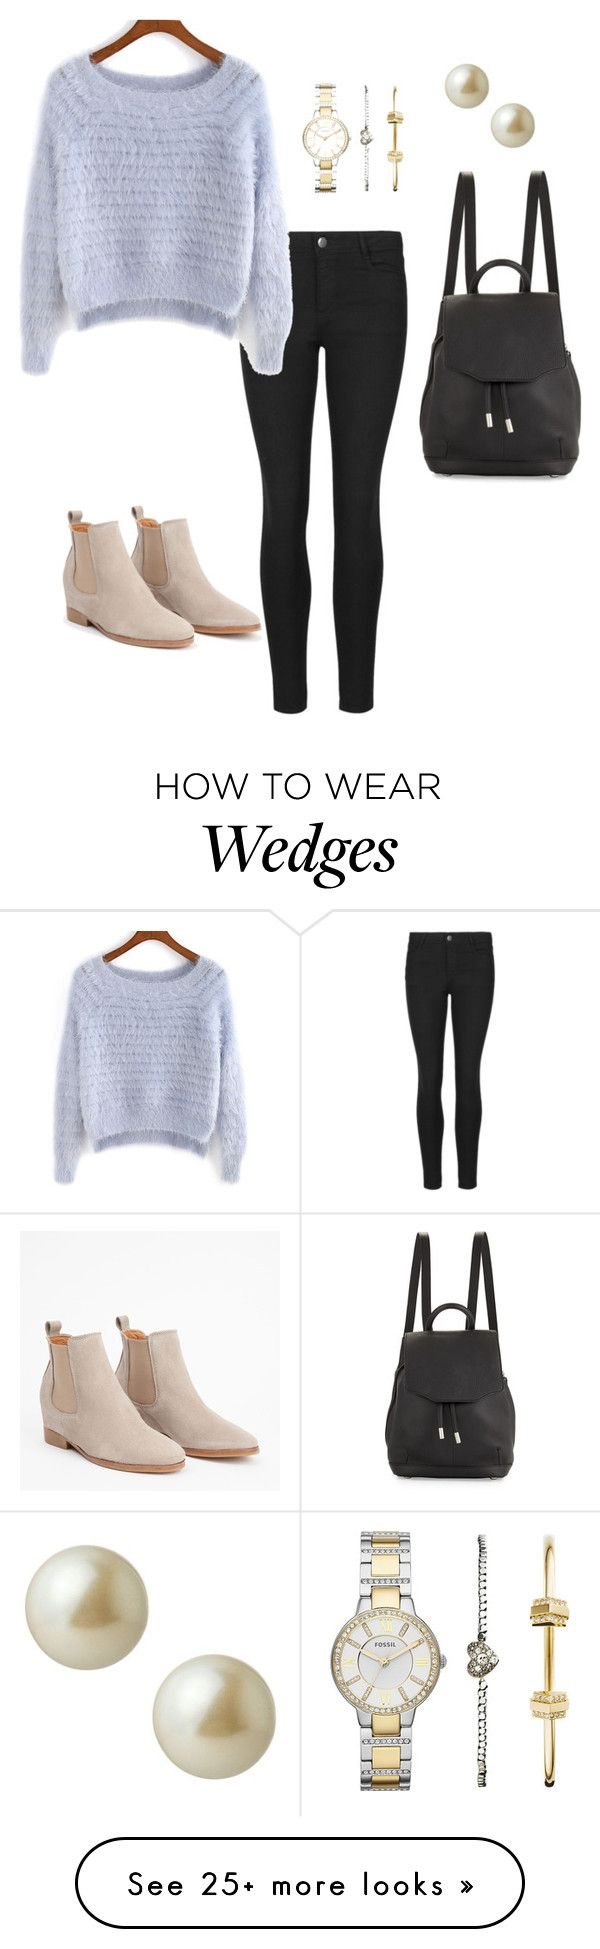 """""""Untitled #586"""" by hyewon-park1020 on Polyvore featuring FOSSIL, Carolee and rag & bone"""